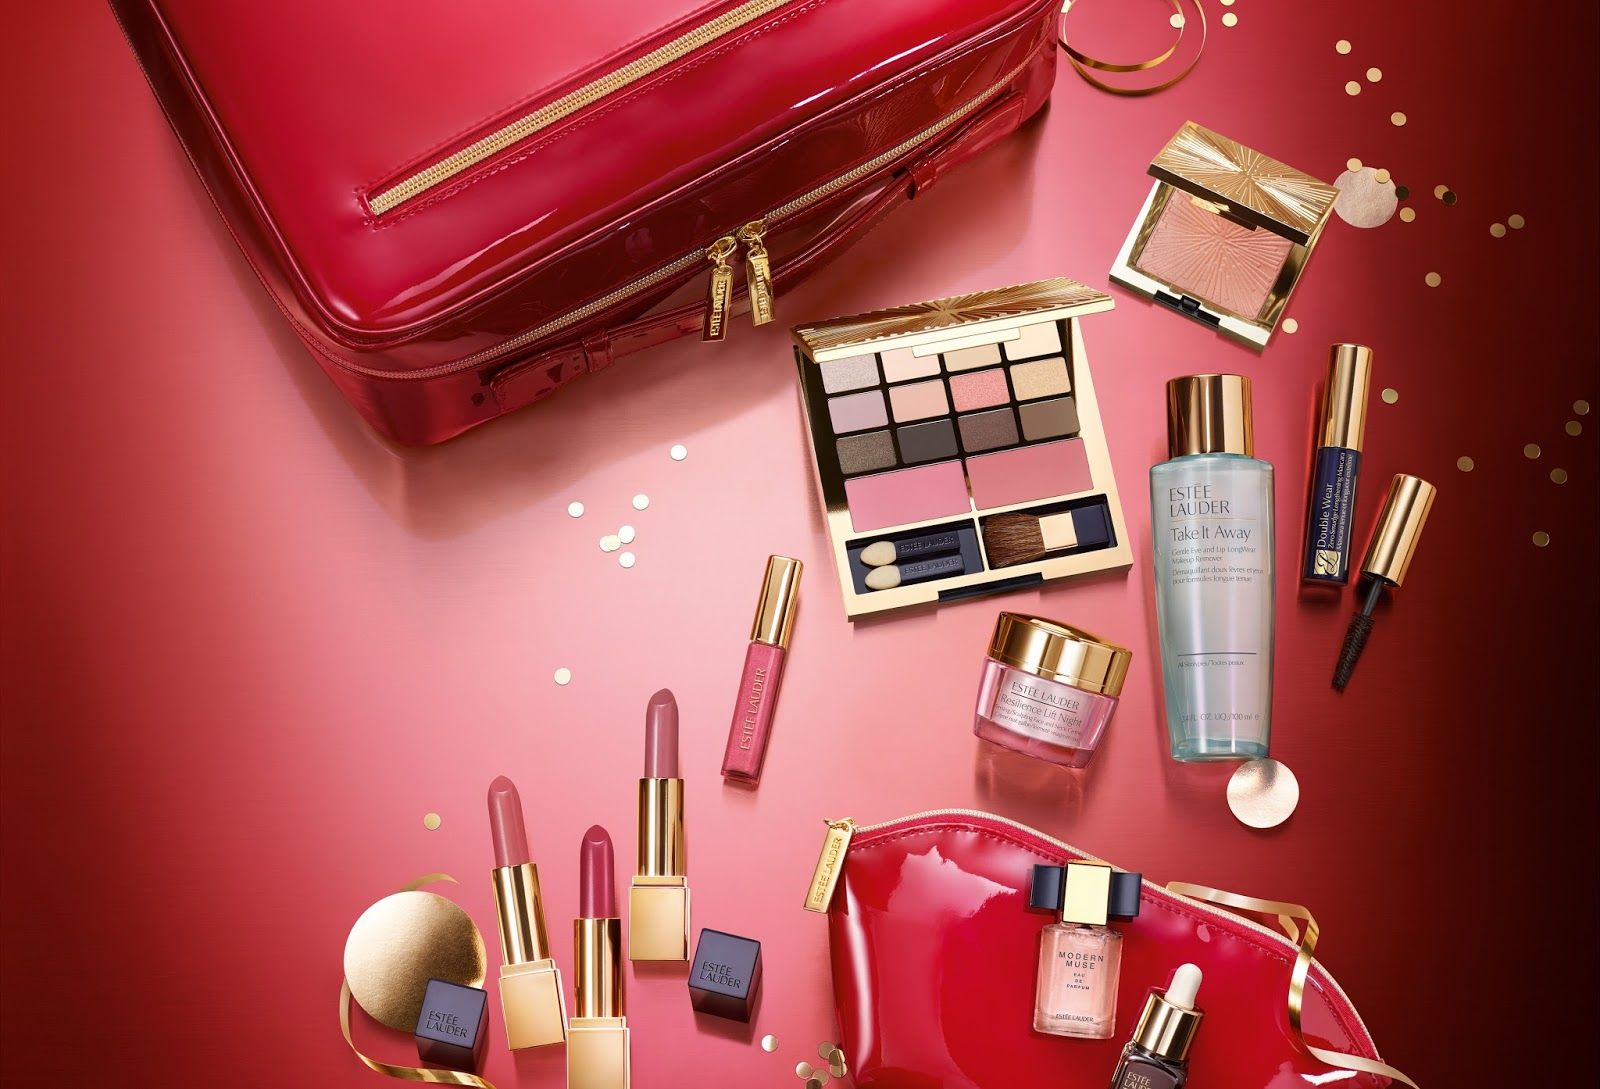 Mary Maria Style Win This Estee Lauder Holiday Blockbuster Set Wort Giveaway Esteelauder Dave Estee Lauder Gift Set Teal Nail Designs Green Nail Designs